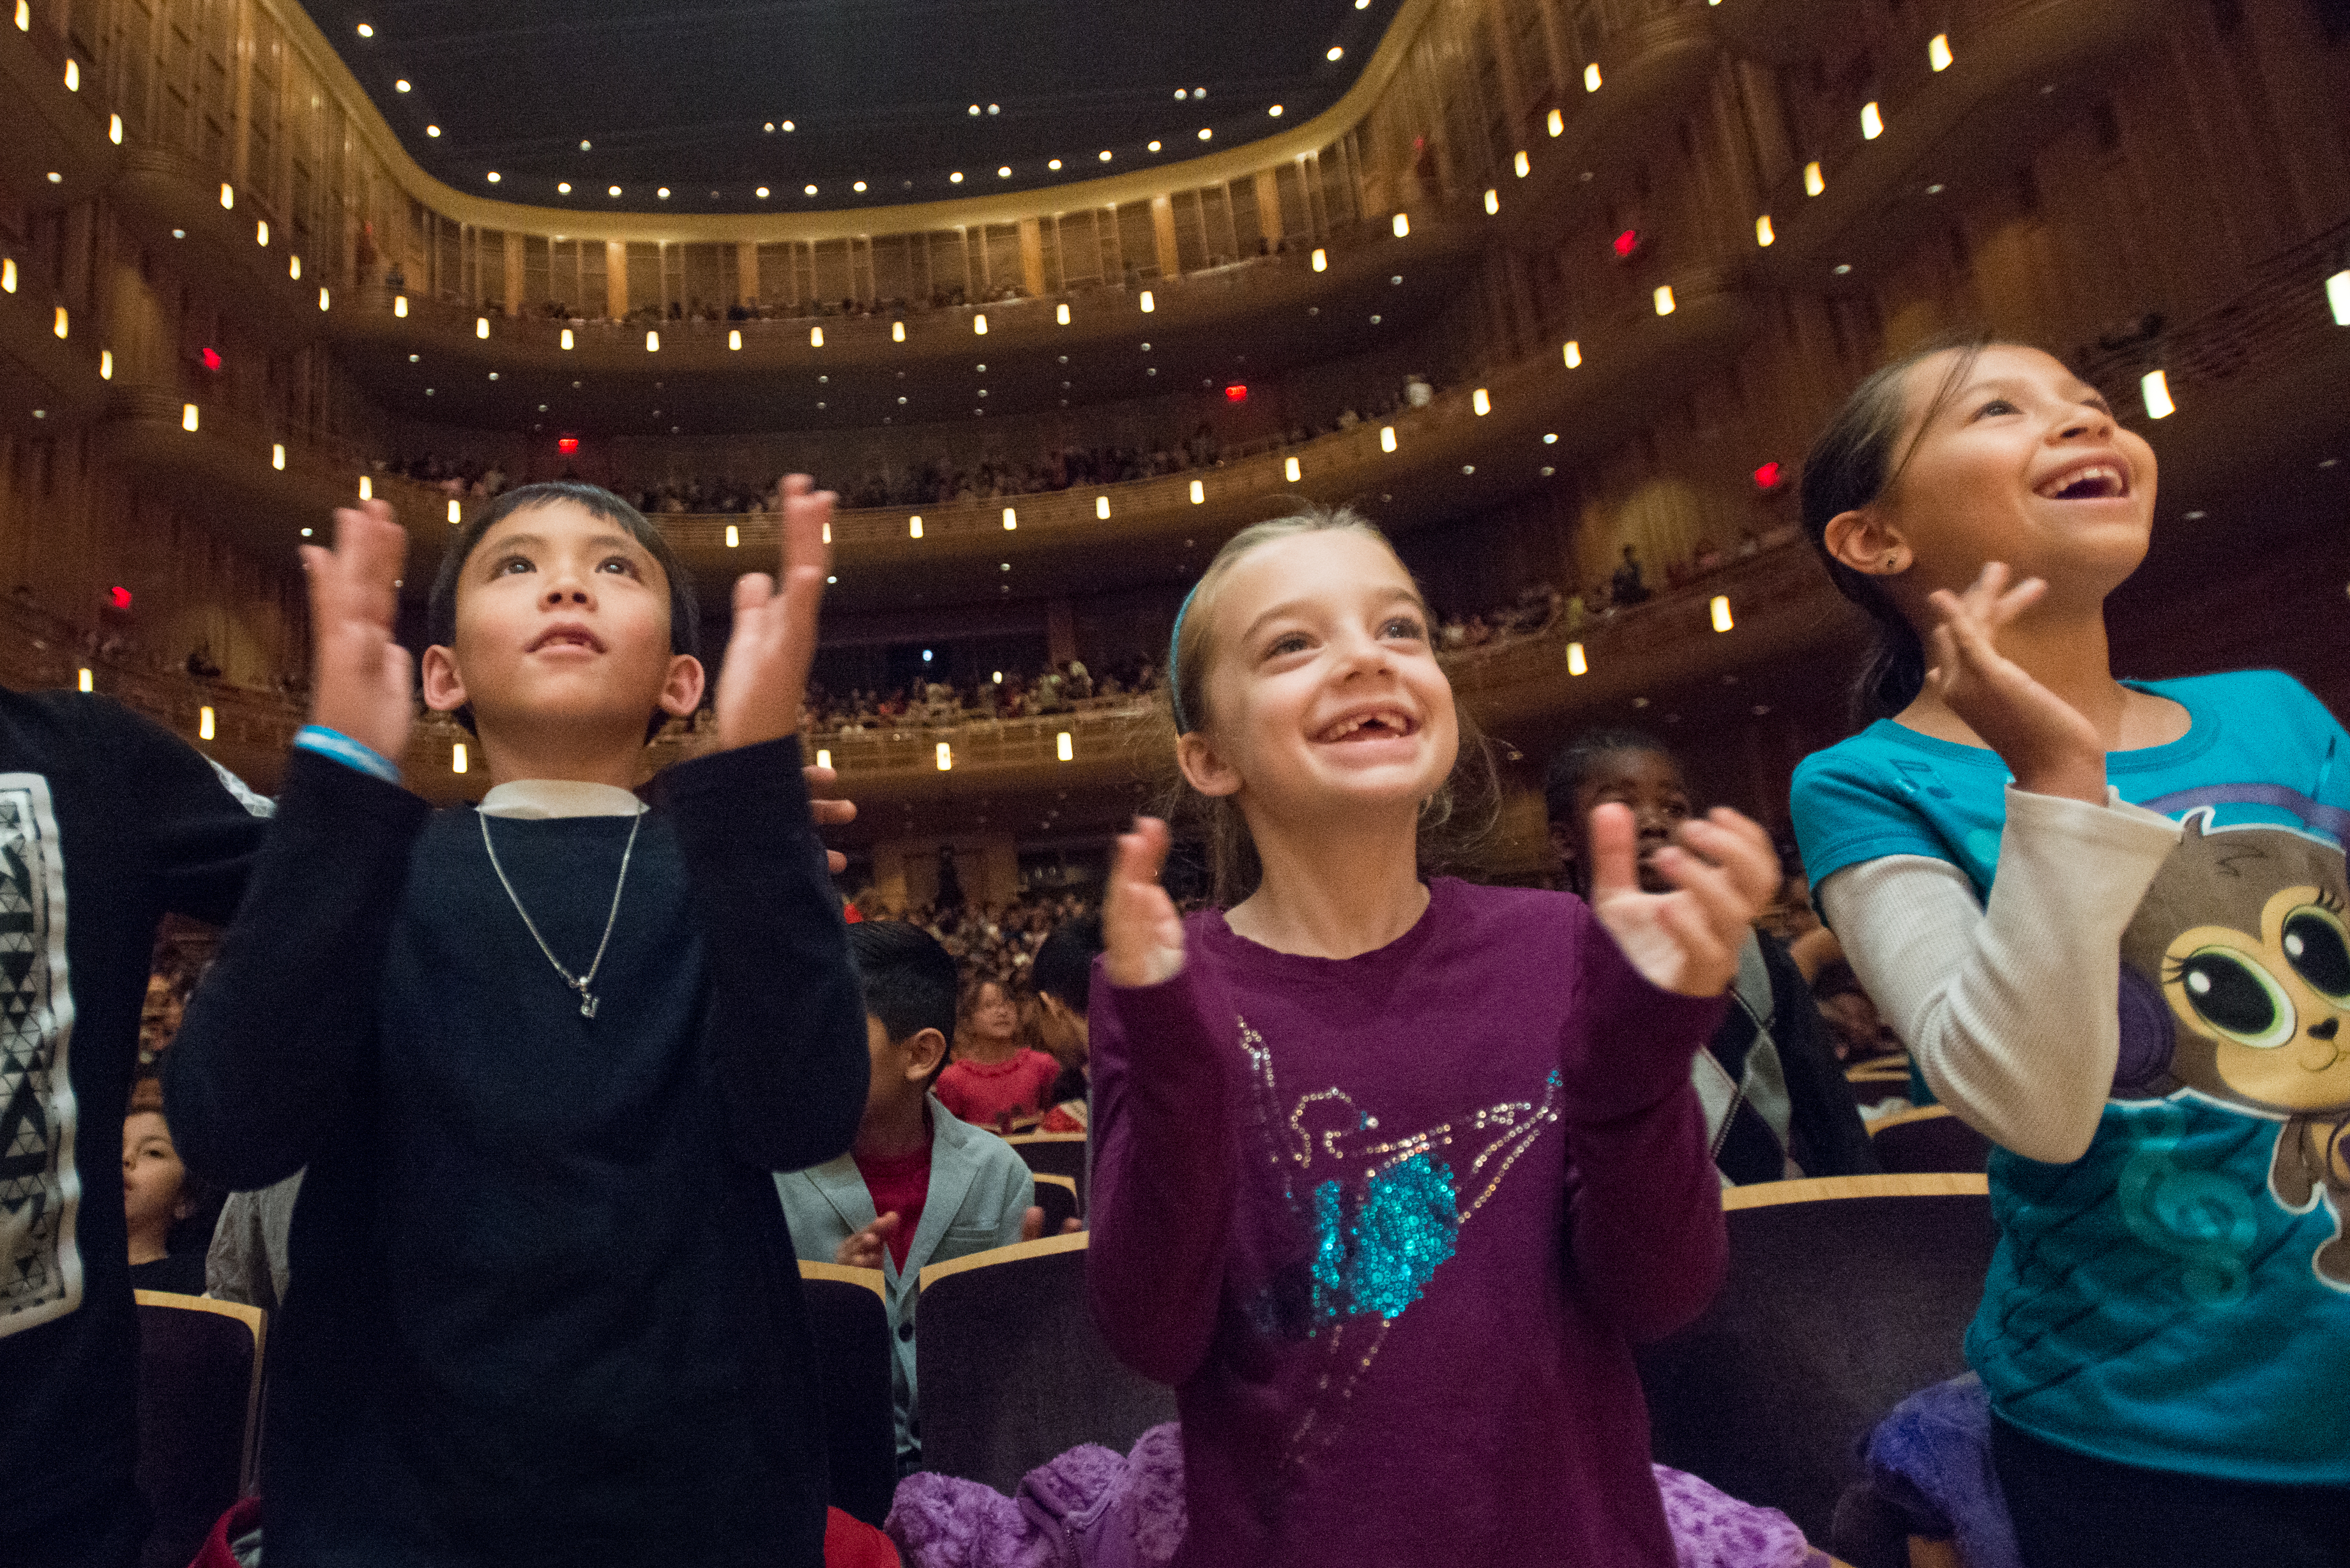 Every MCPS second- and fifth-grader comes to the Music Center's Concert Hall for the opportunity to experience the wonder of a live performance and build on classroom-based curriculum on classical music and the blues.